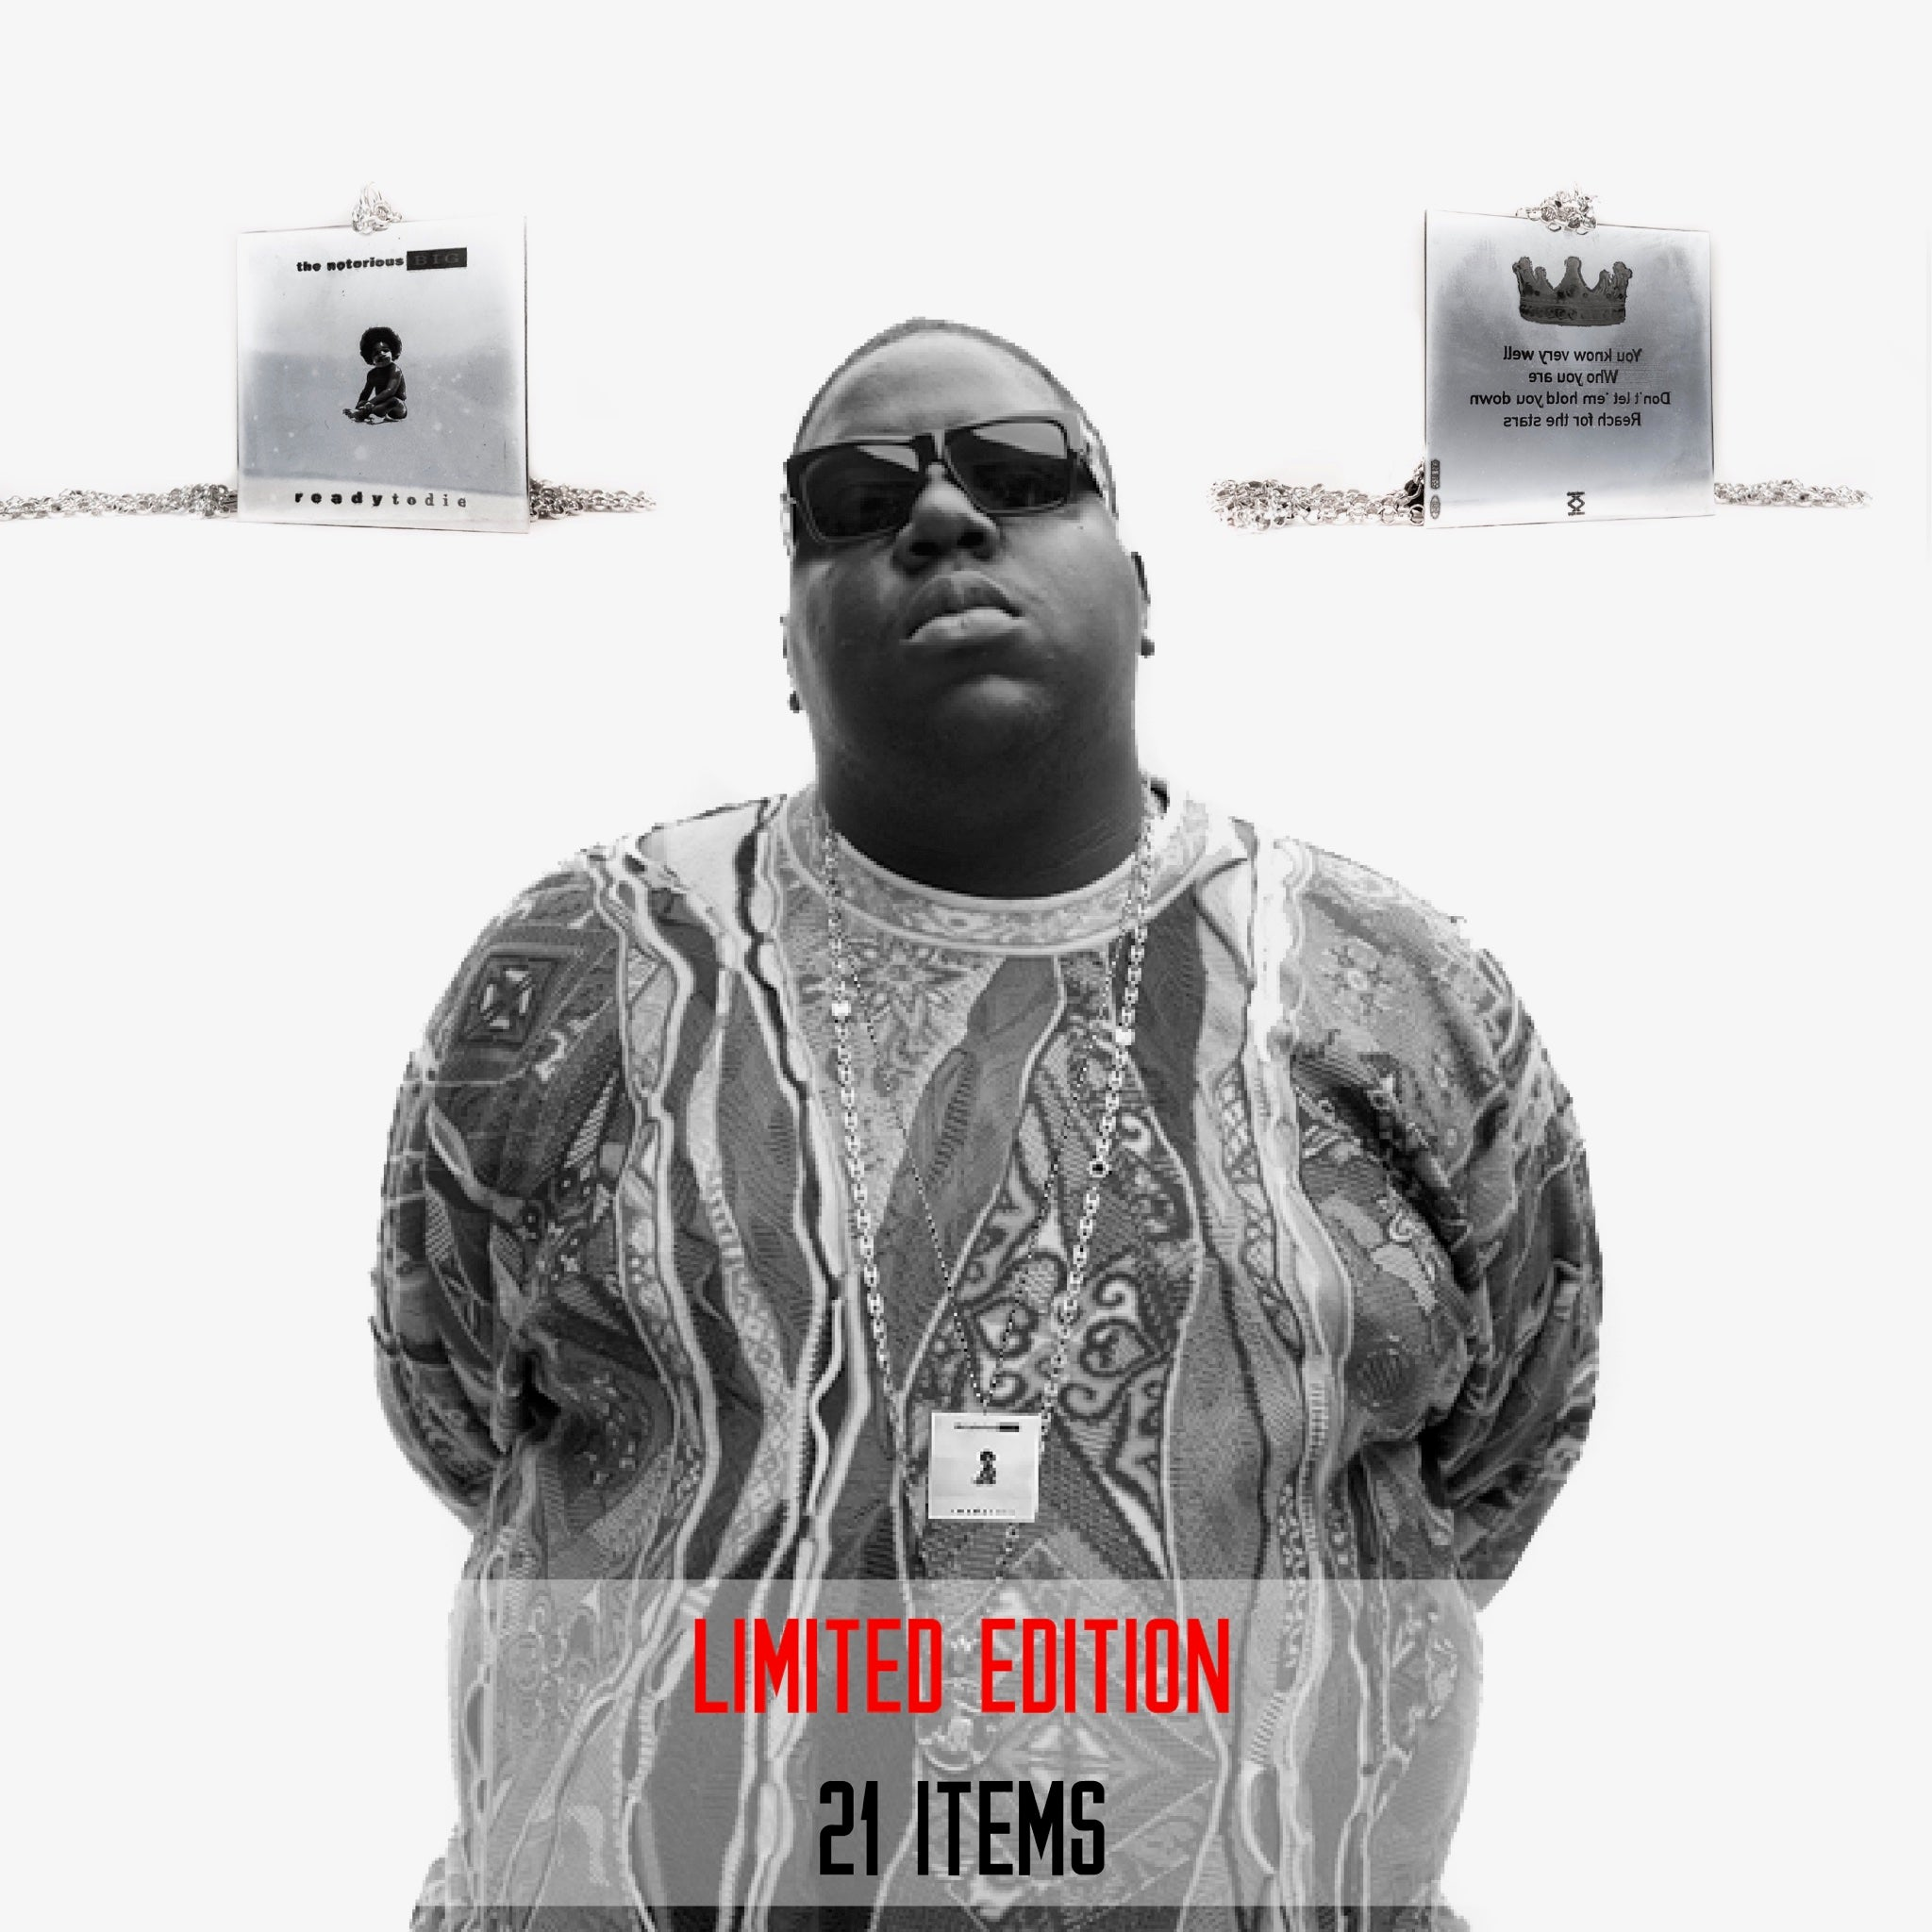 THE NOTORIOUS B.I.G. - collana in argento 925 di album musicale